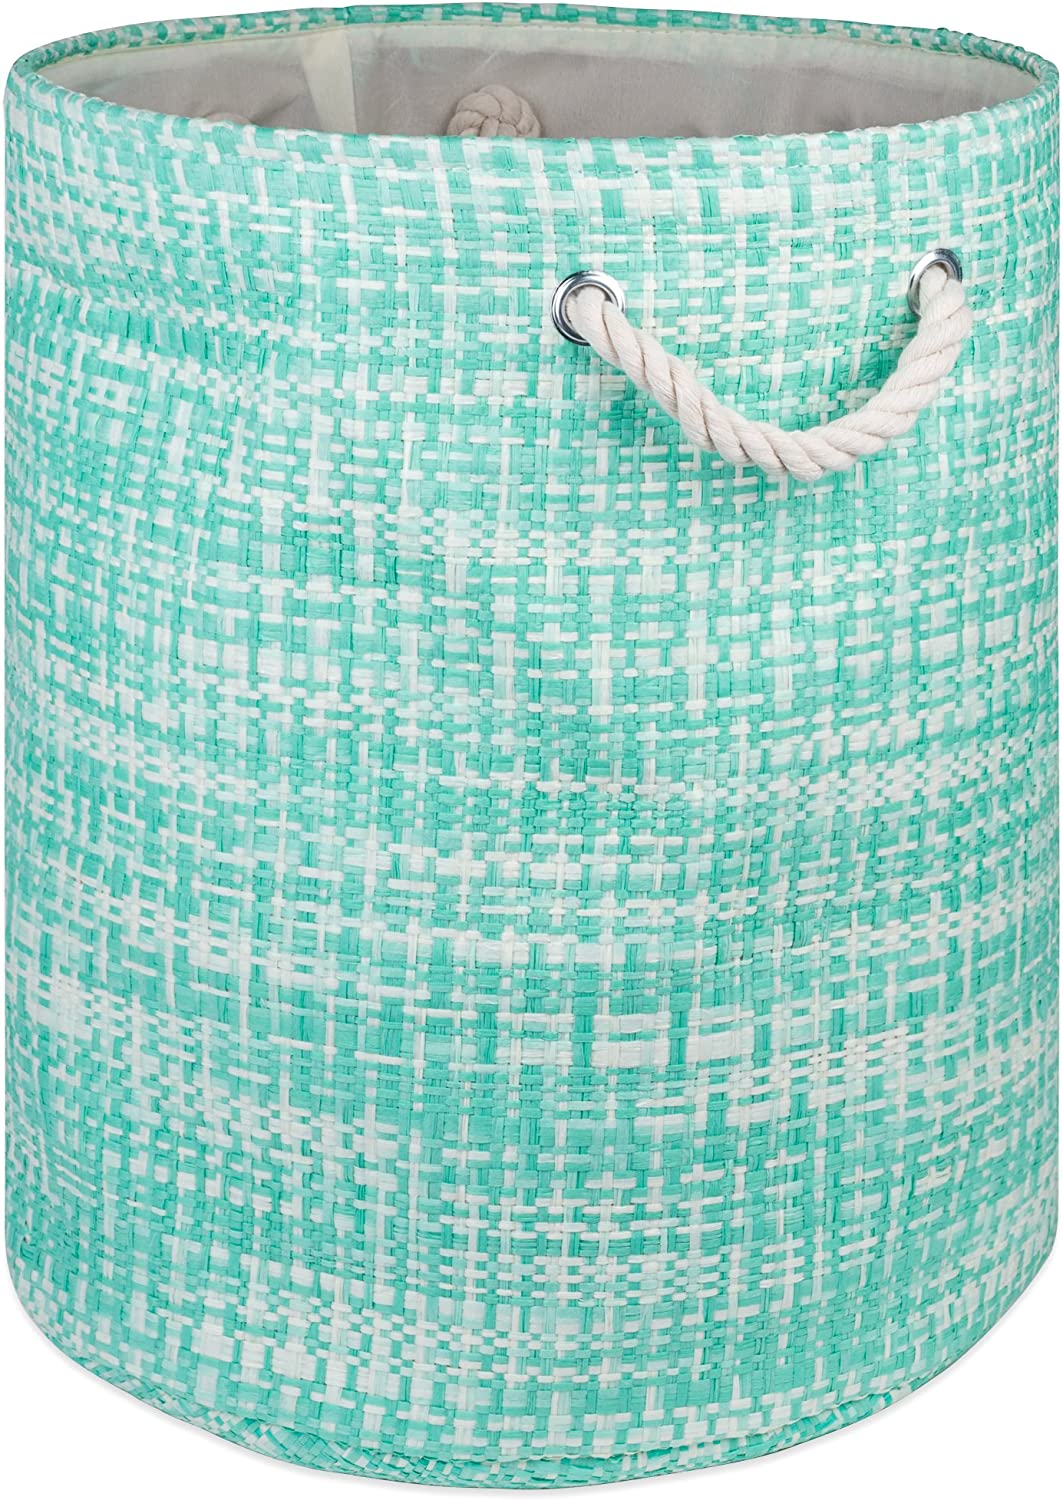 "DII Woven Paper Basket or Bin, Collapsible & Convenient Home Organization Solution for Bedroom, Bathroom, Dorm or Laundry (Large Round - 15x20""), Aqua Tweed"